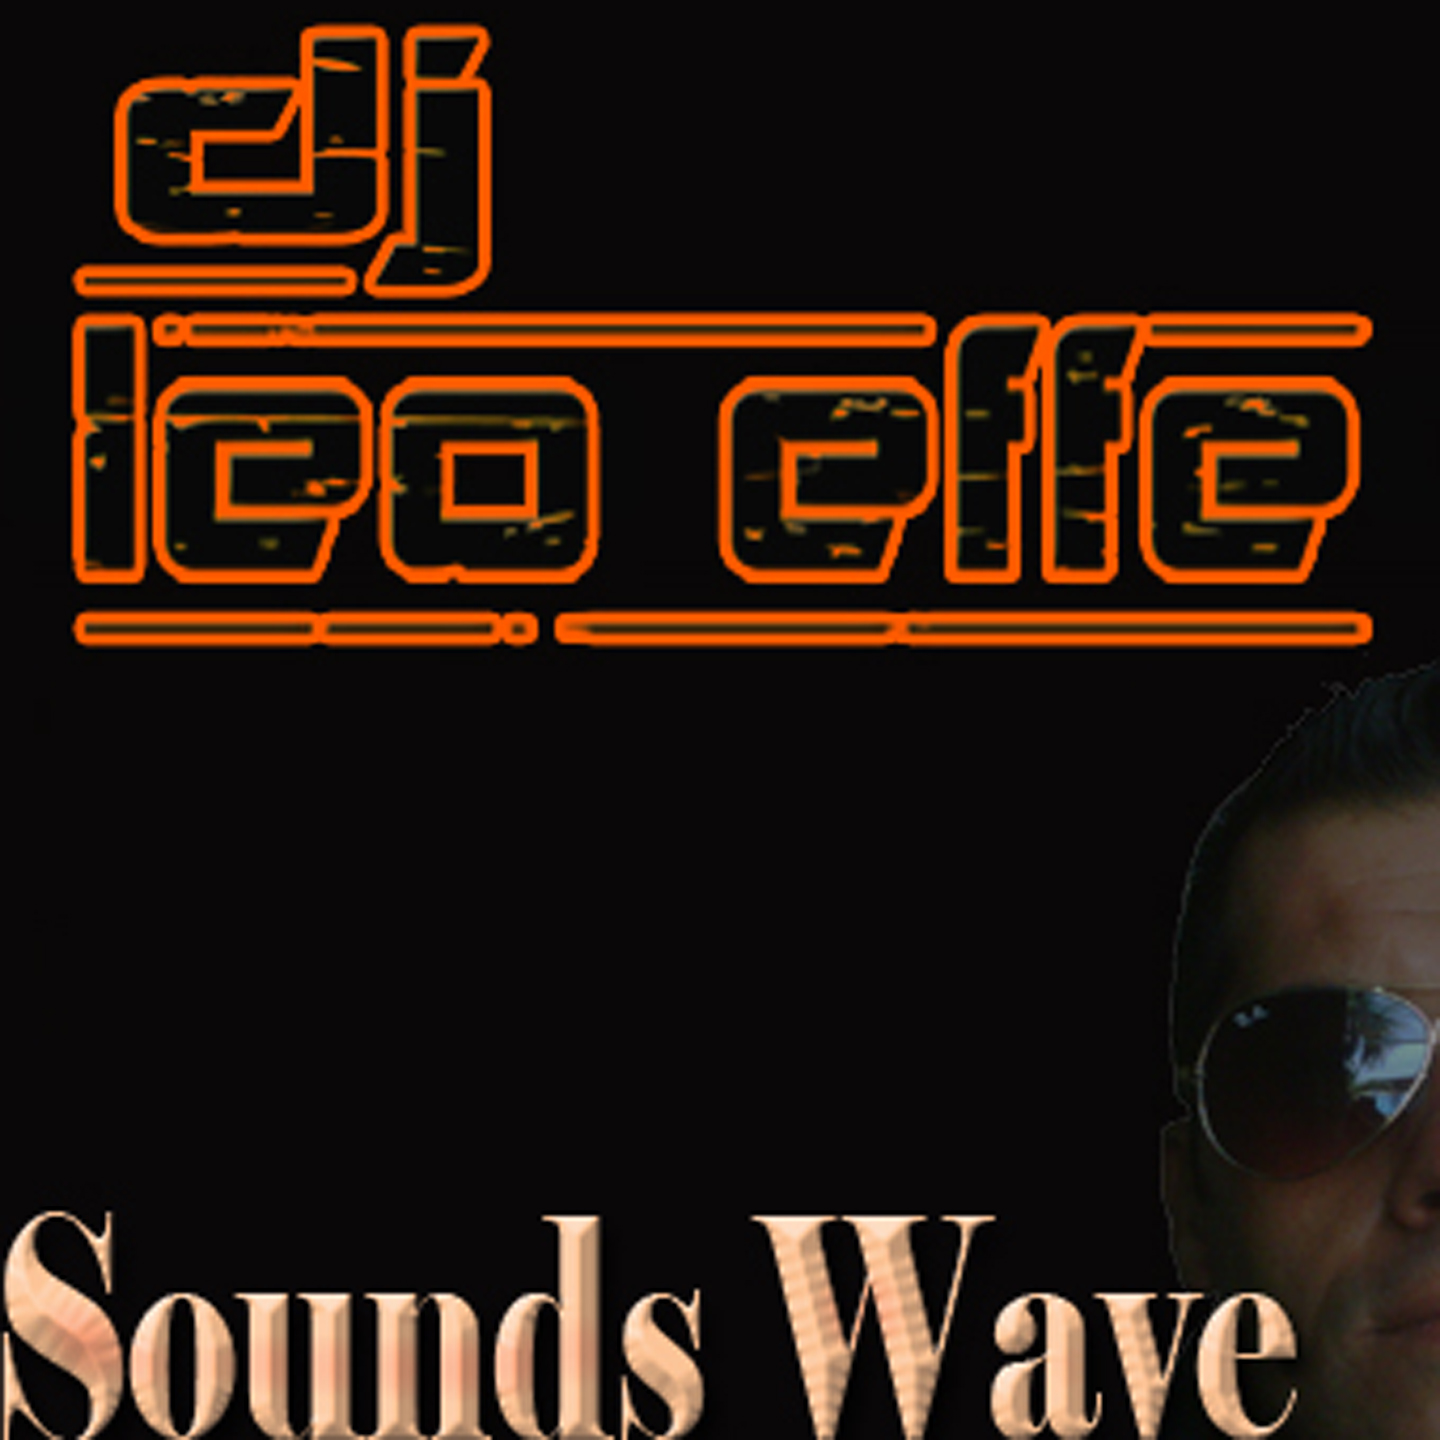 SOUNDS WAVE